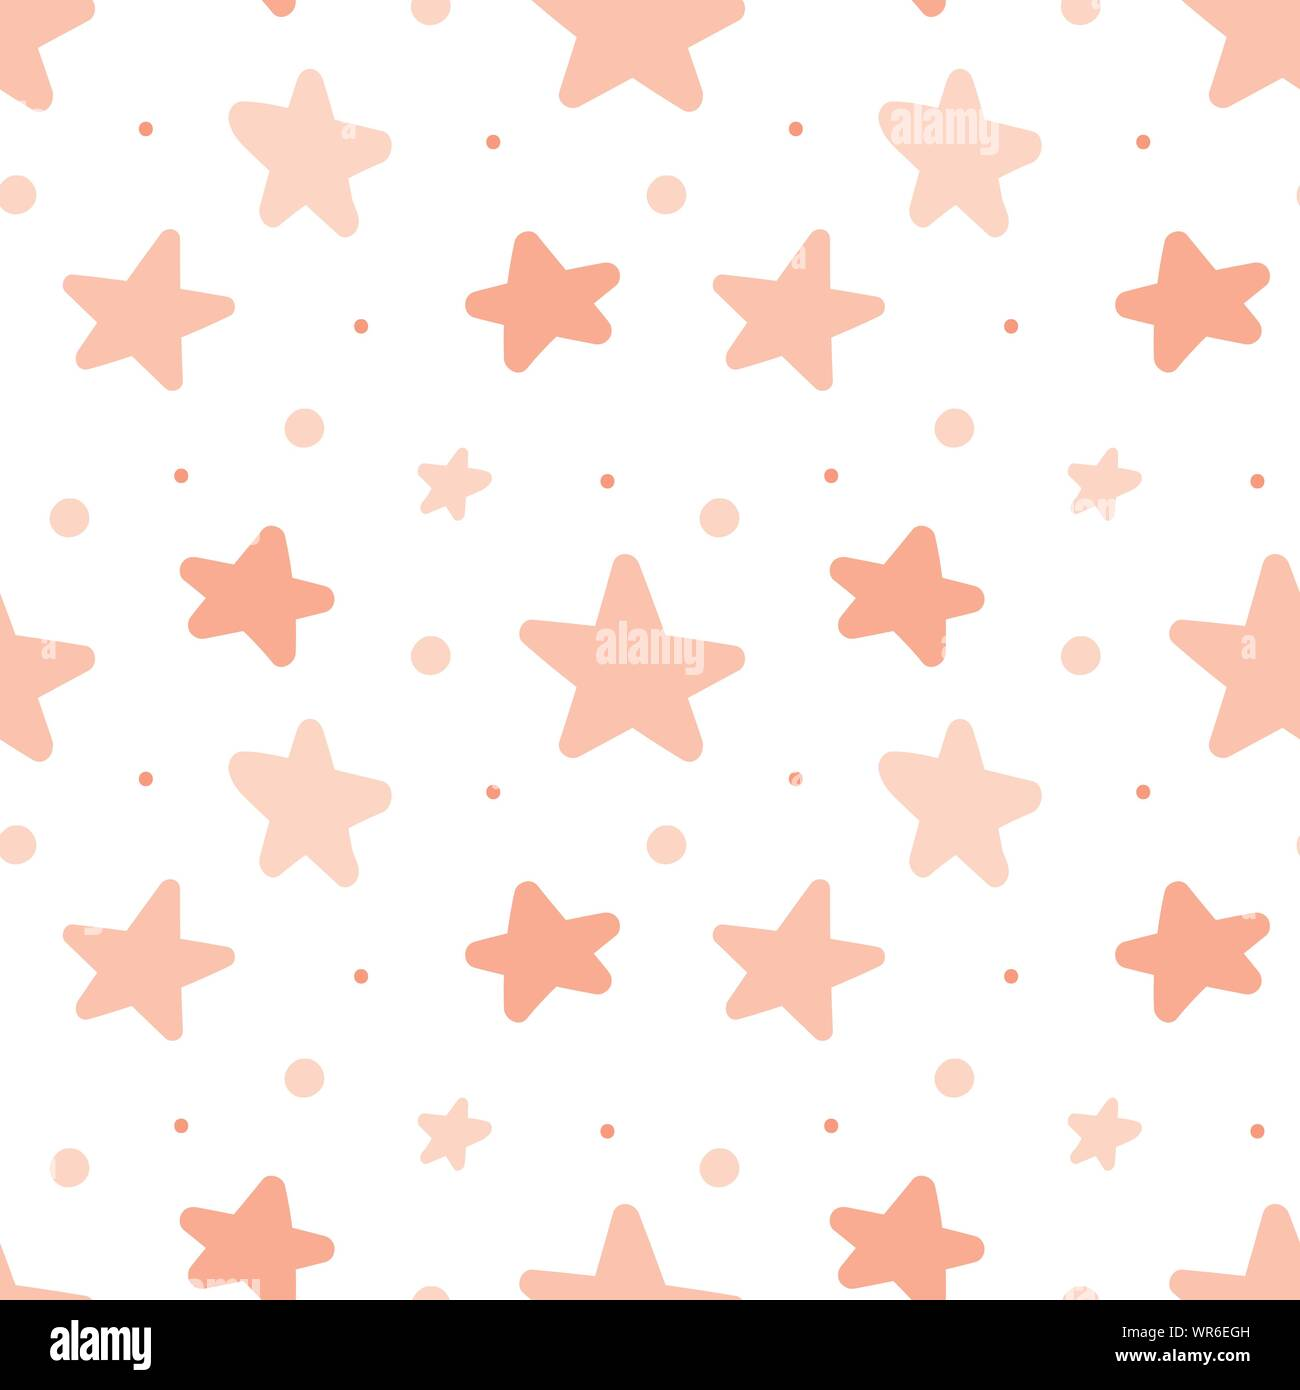 Seamless Pattern Of Pink Stars Concept For Baby Shower Birthday Holiday Sleep Texture Background Wallpaper Wrapping Paper Print For Clothes Stock Vector Image Art Alamy